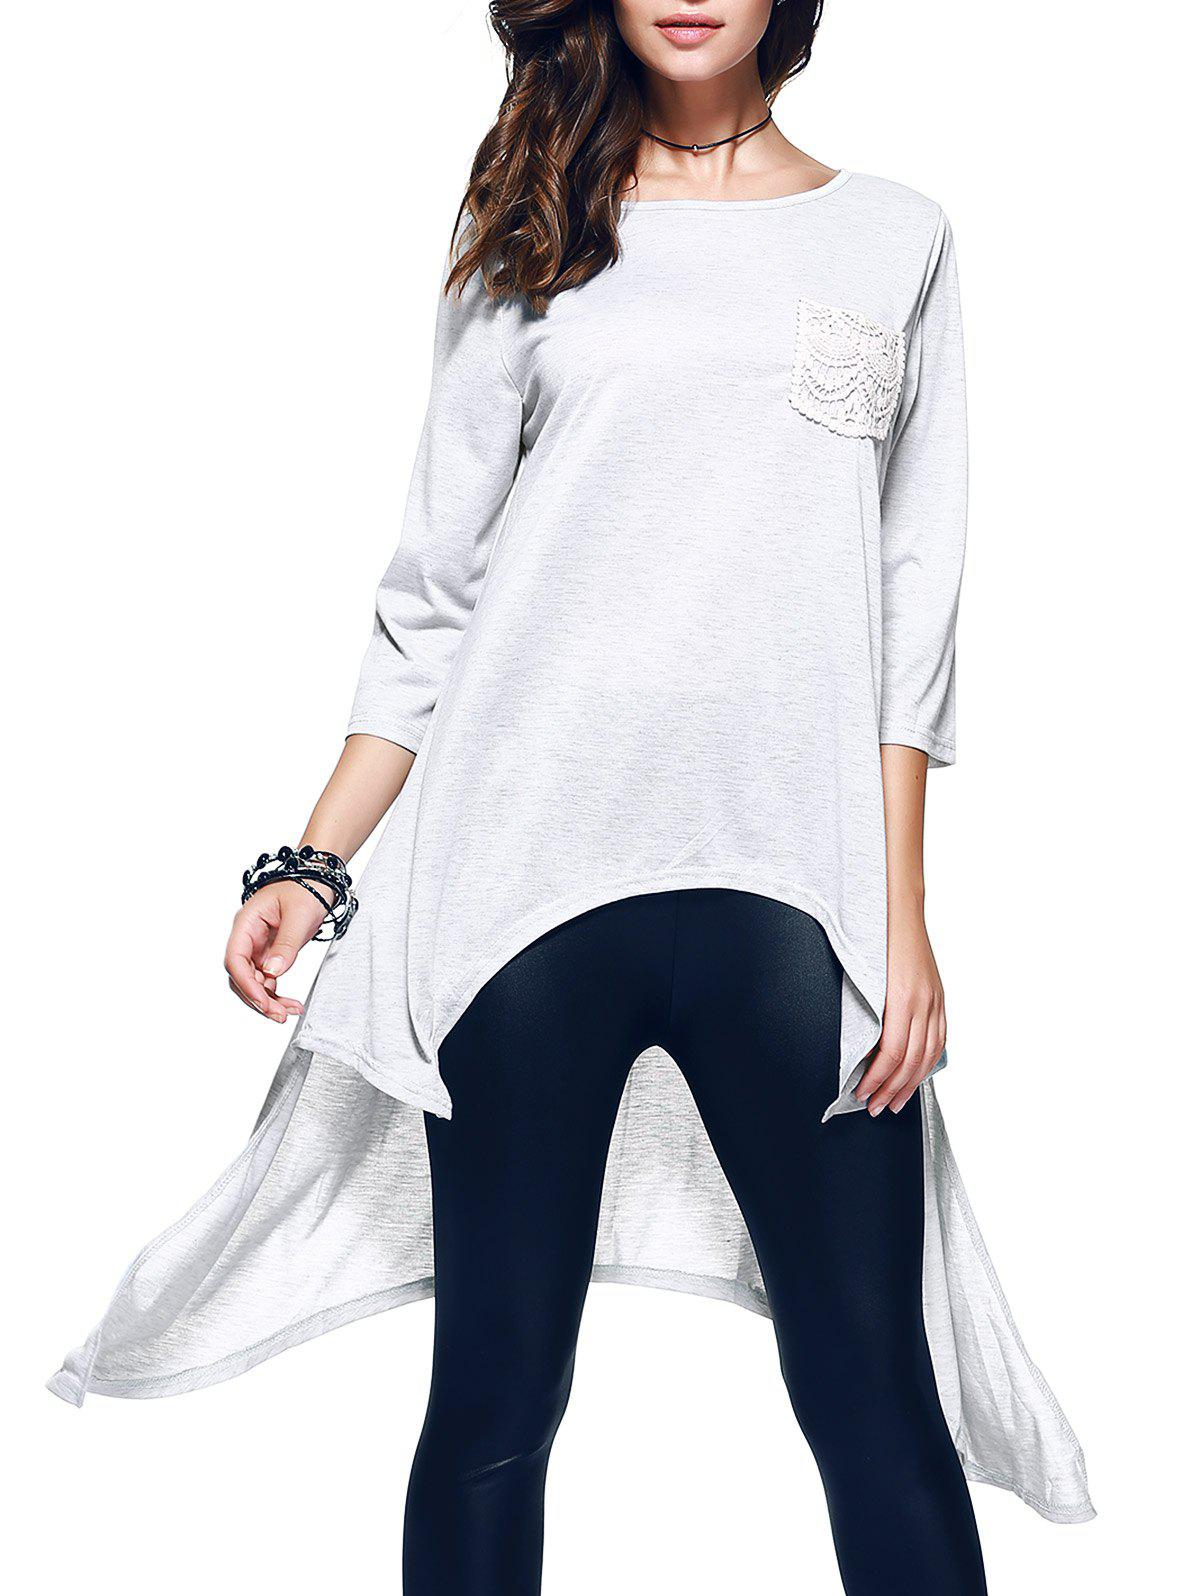 Store Chic 3/4 Sleeve Asymmetrical Patch Design Women's T-Shirt